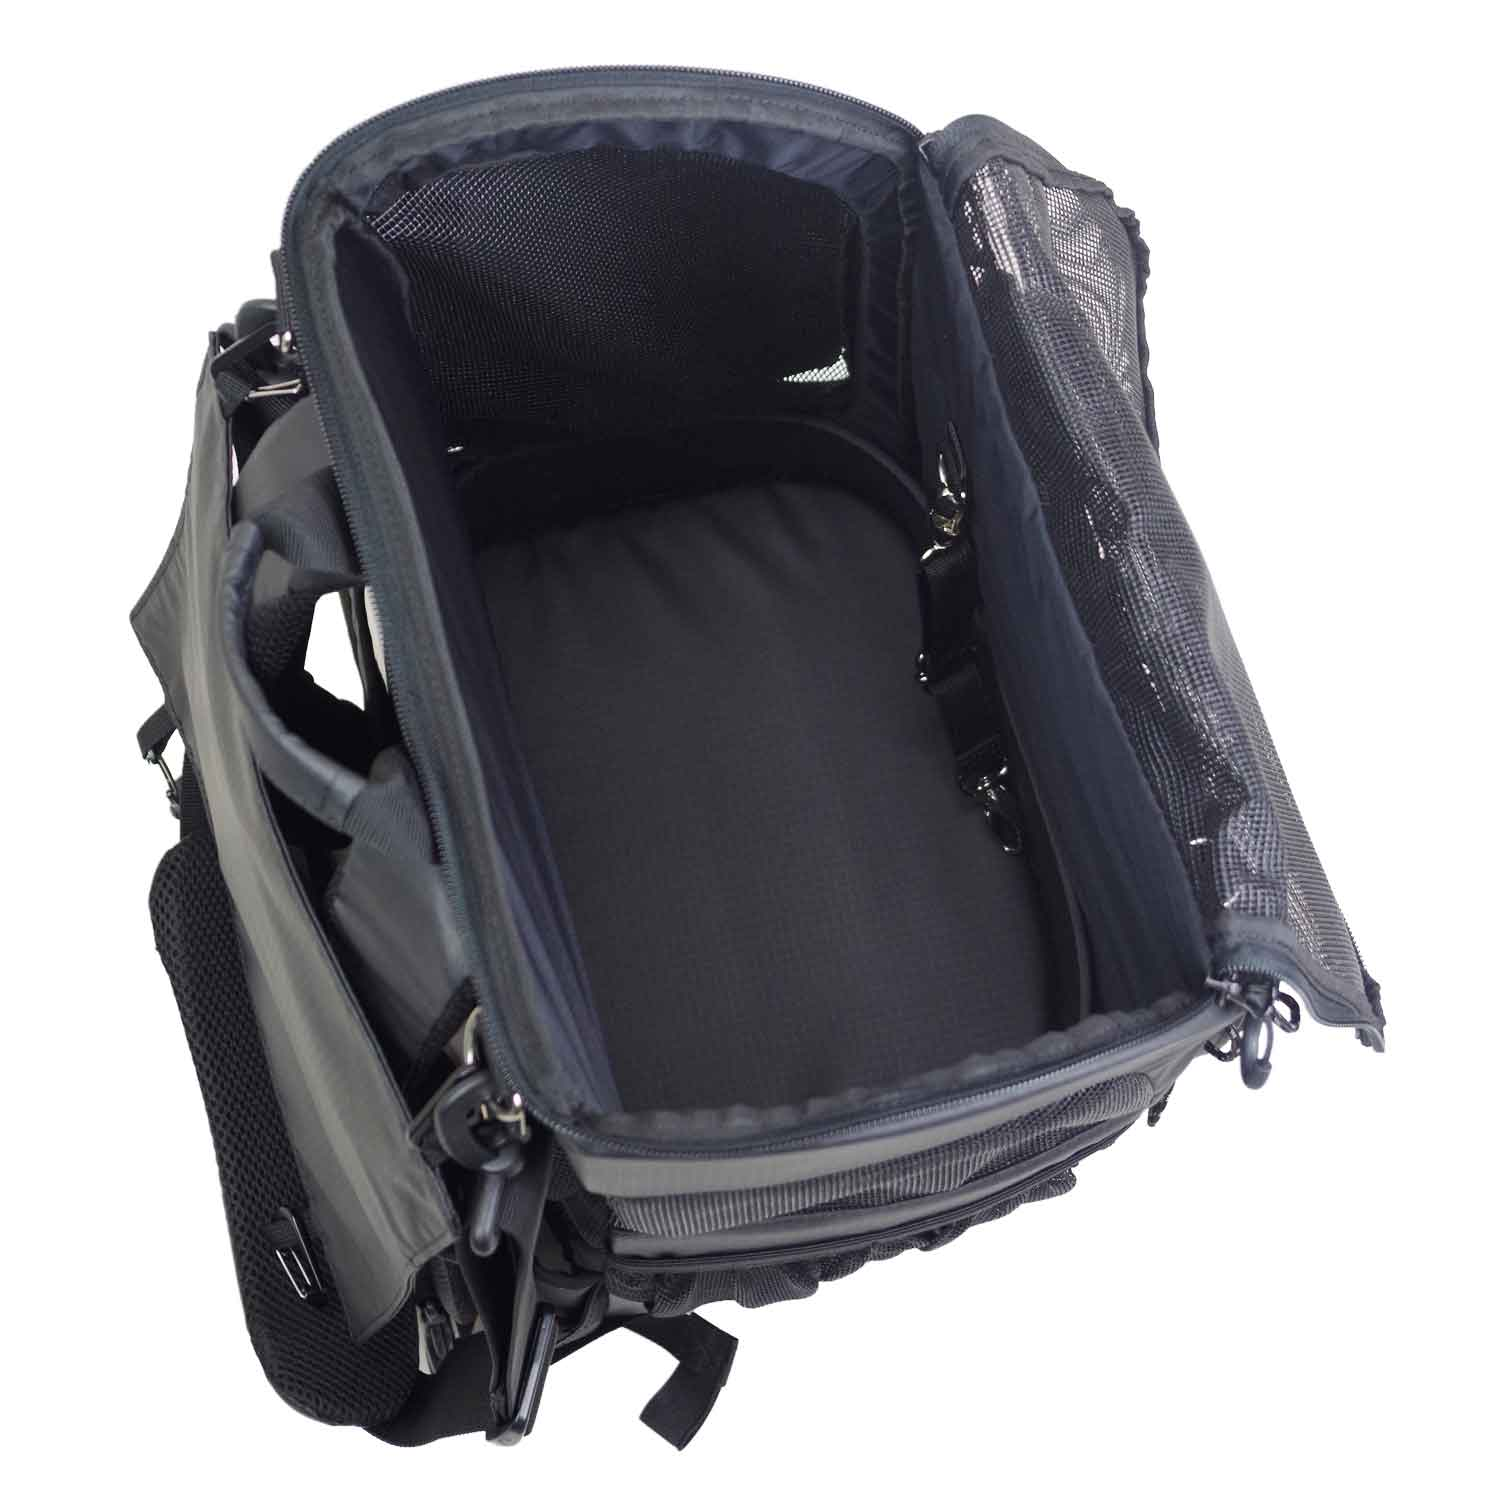 AirBuggy 3WAY BACKPACK CARRIER BLACK